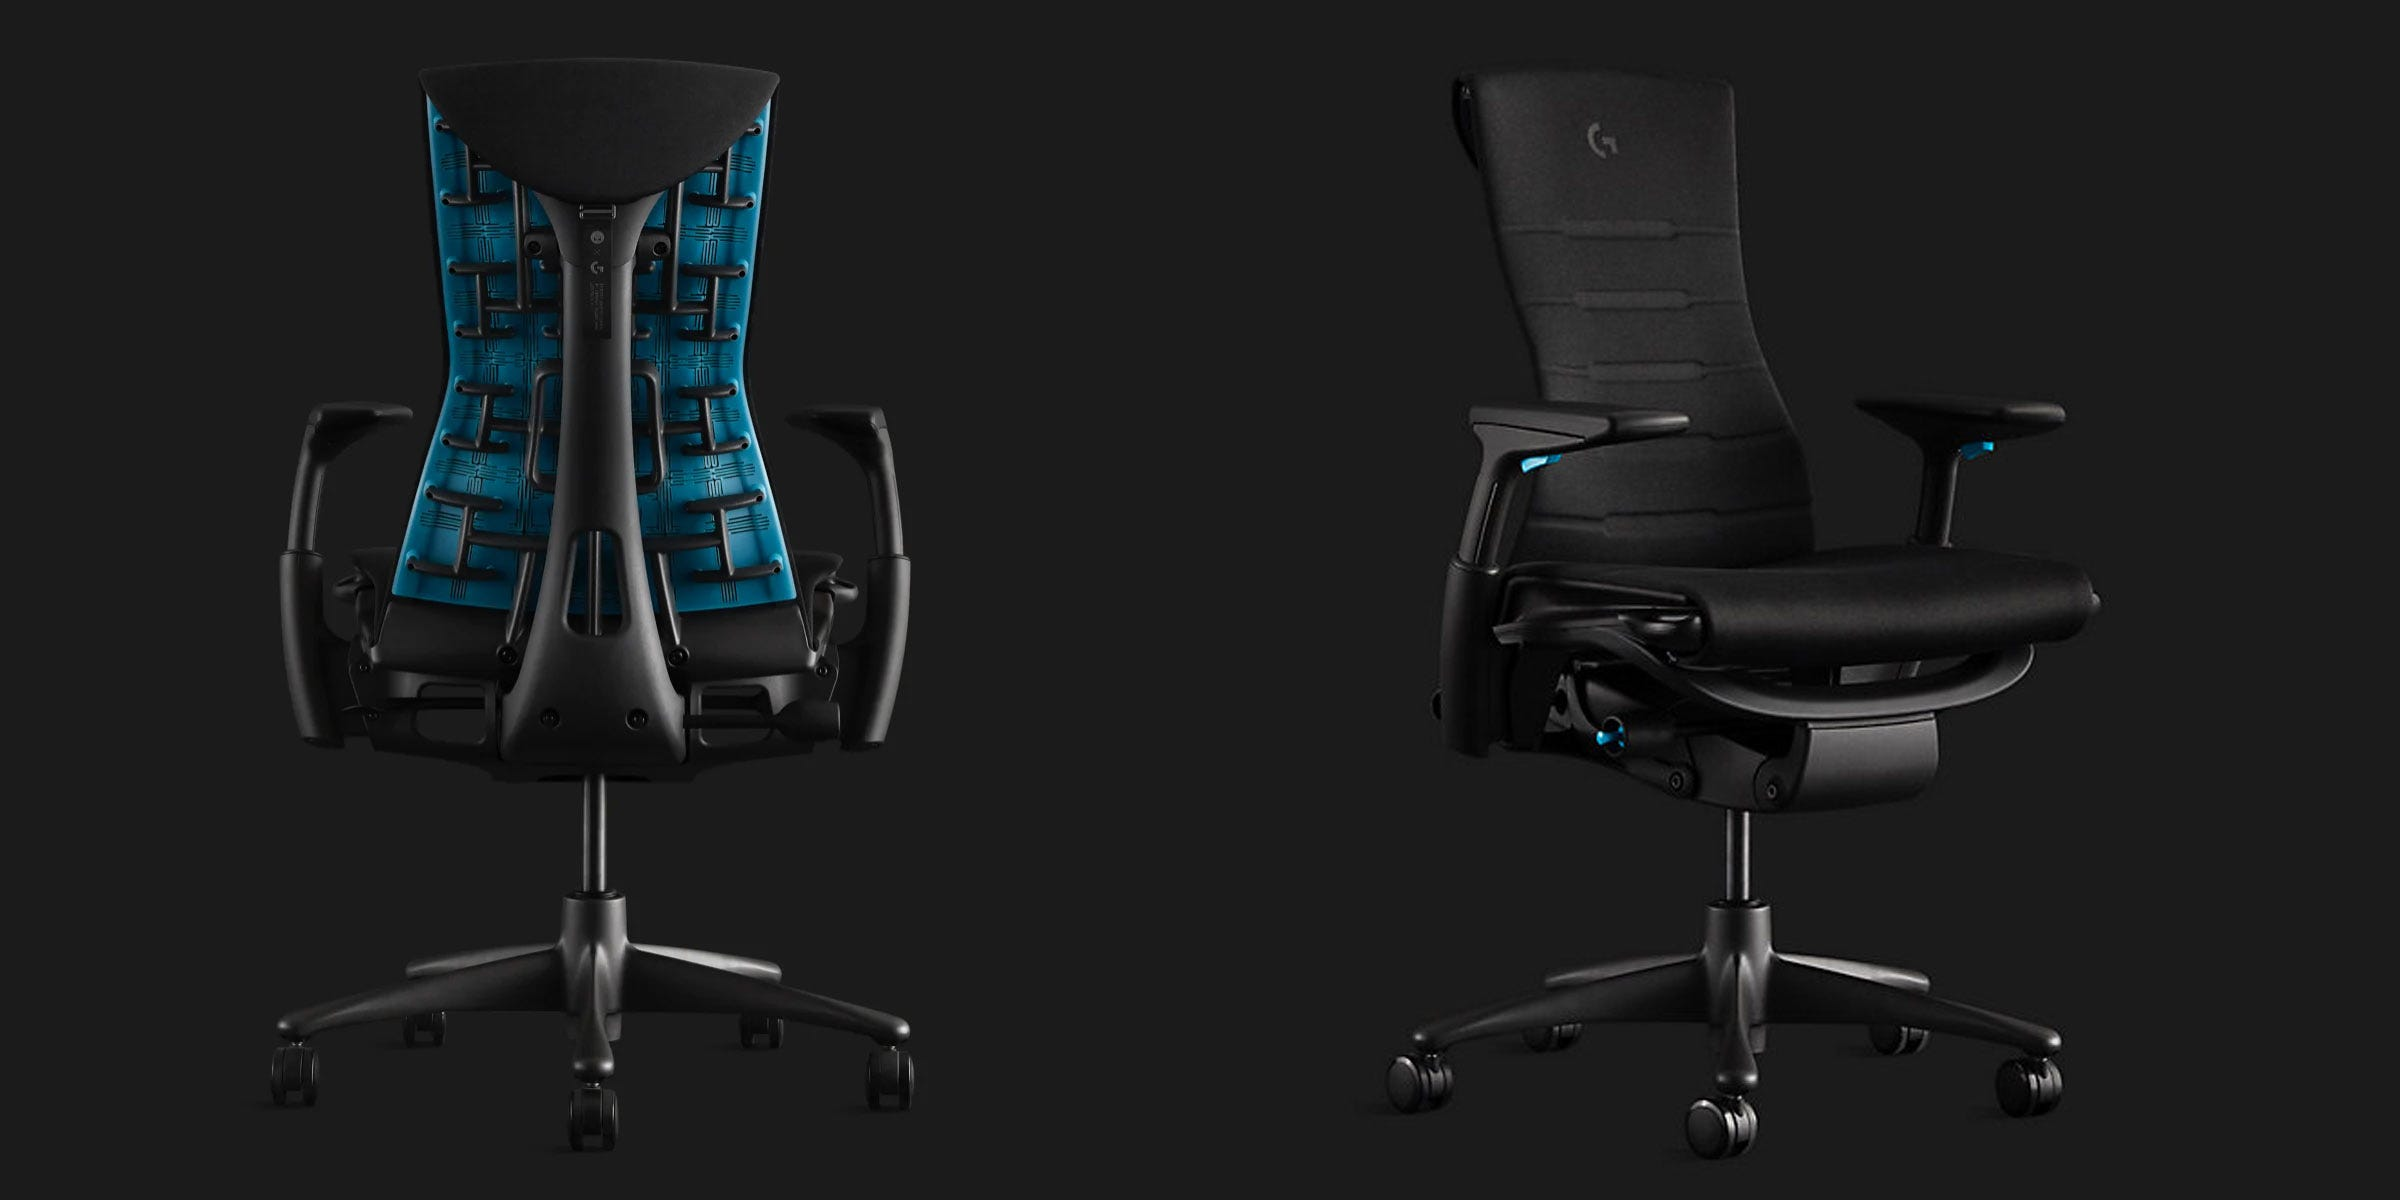 Herman Miller and Logitech Embody chair, from the front and back